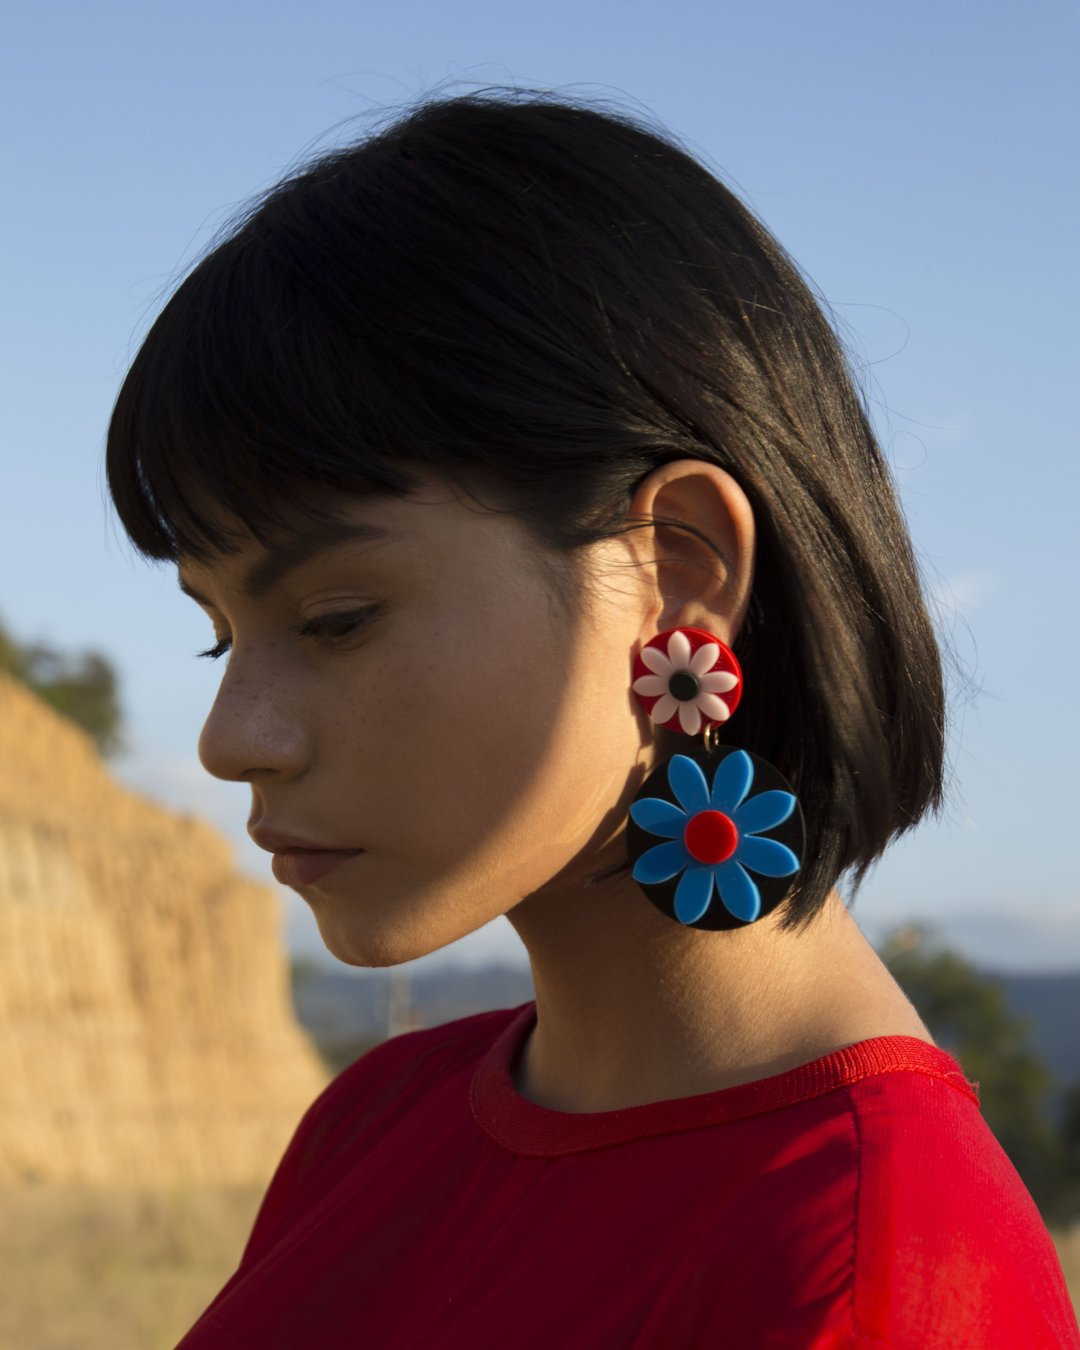 The Anemone Earrings